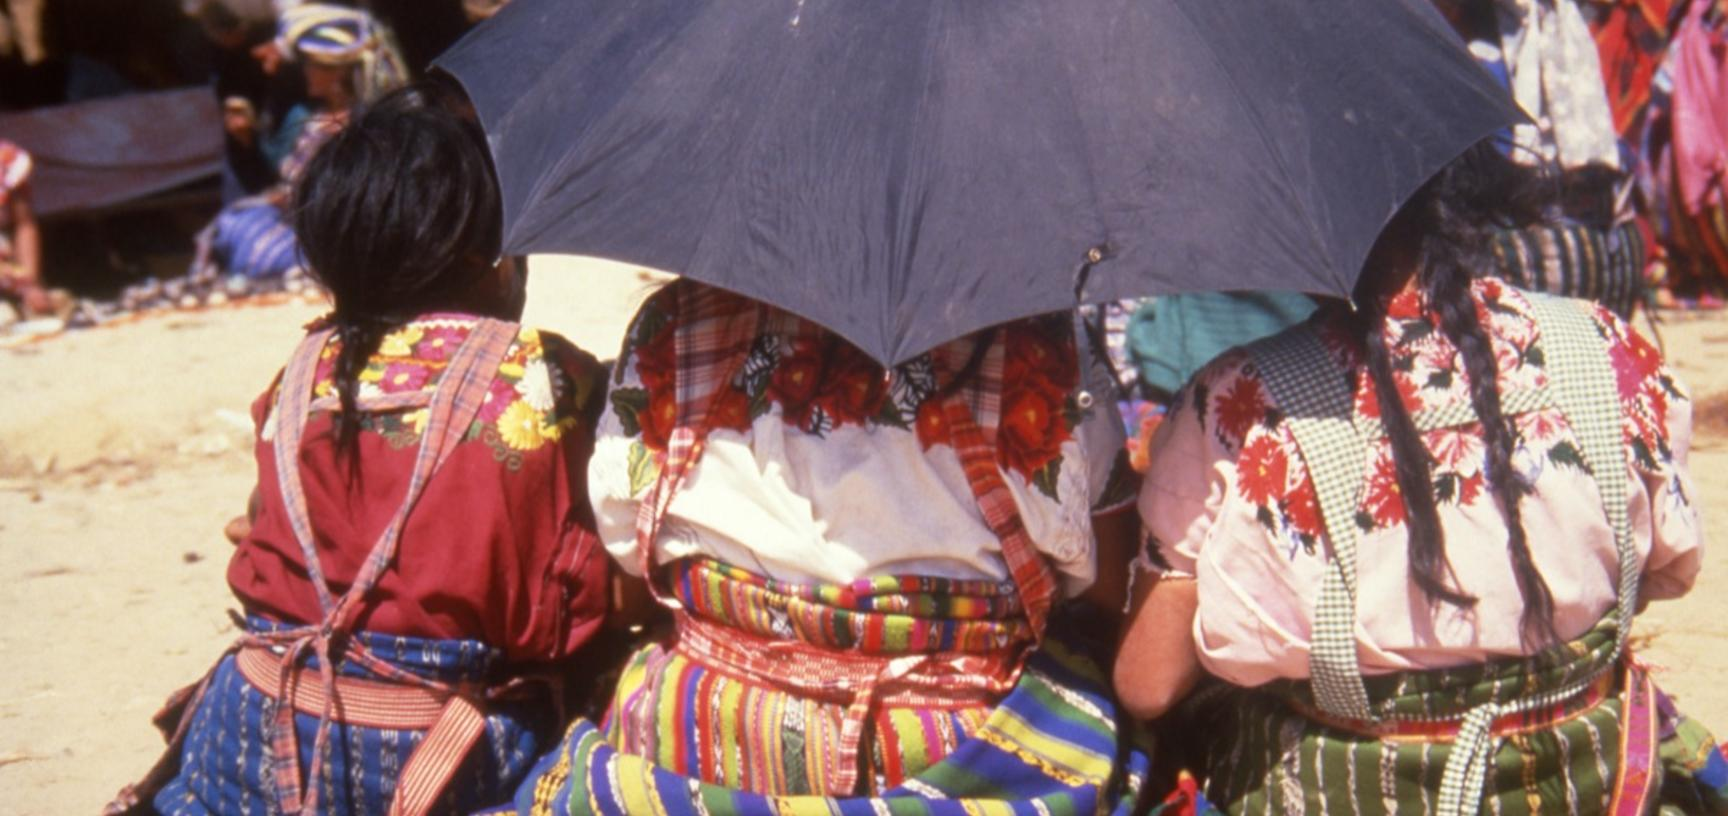 Girls at a market in Chichicastenango, Guatemala. Photo by Sheila Paine 1991.